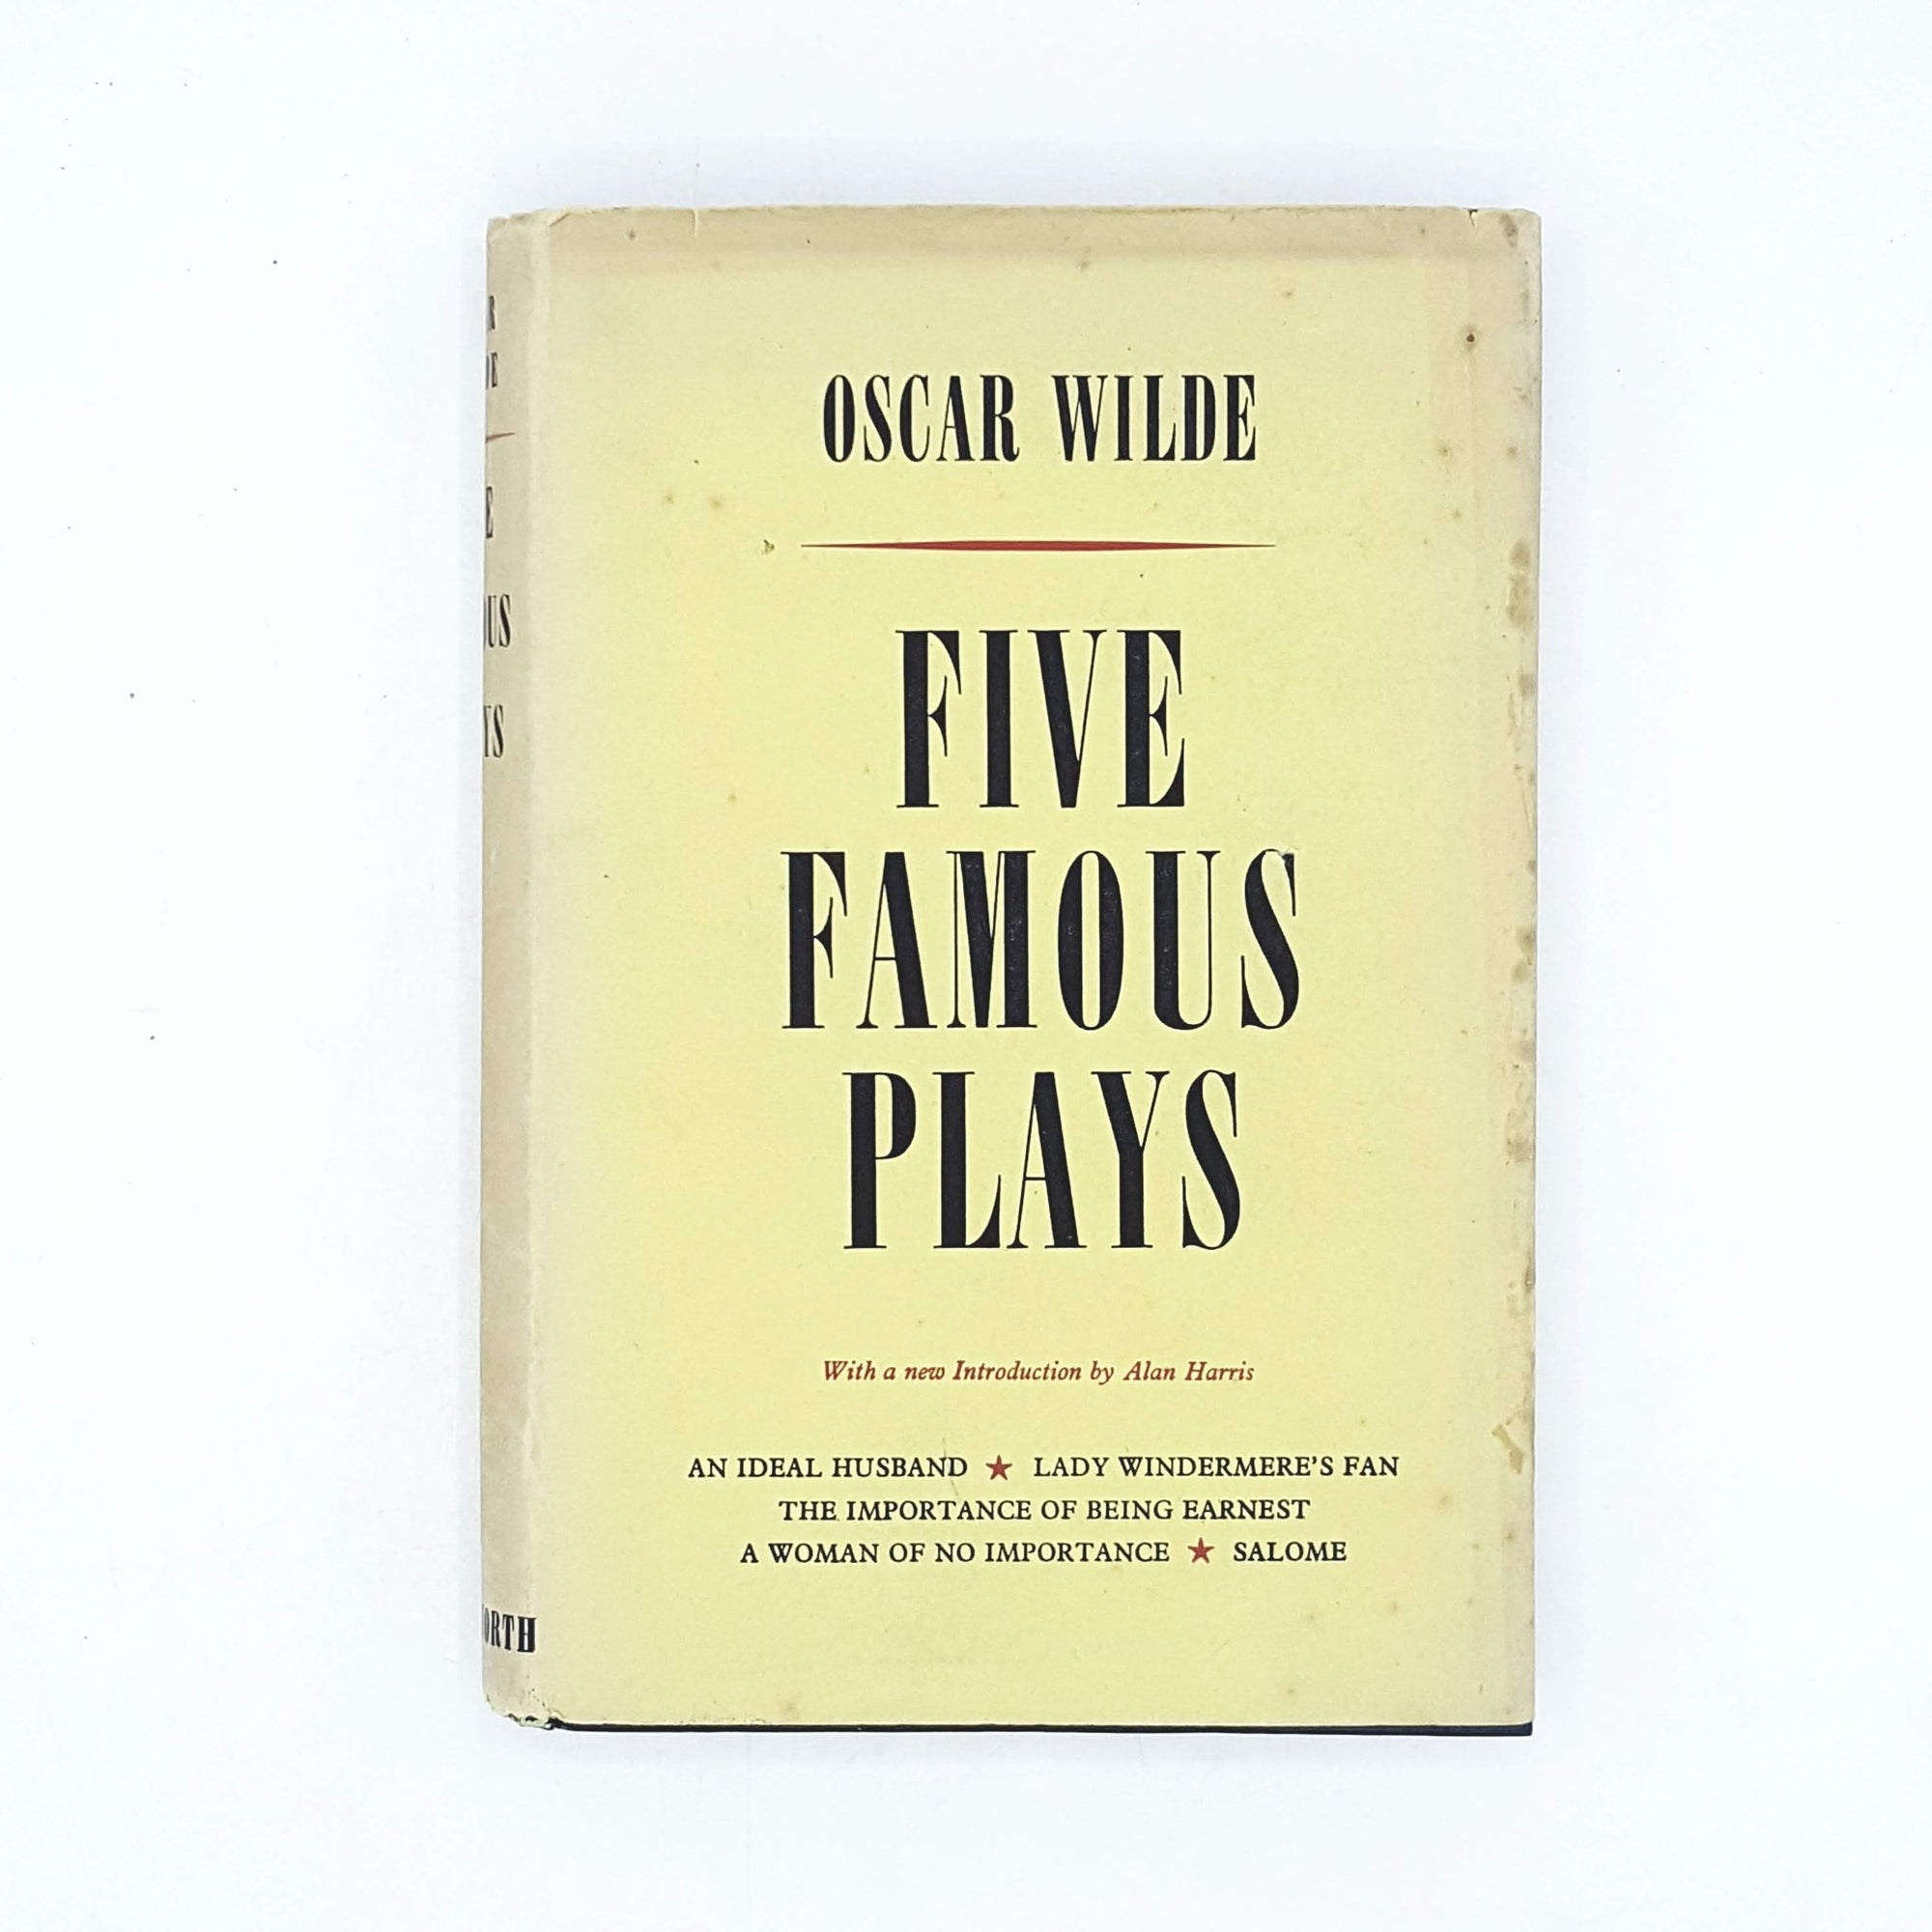 Oscar Wilde's Five Famous Plays 1952